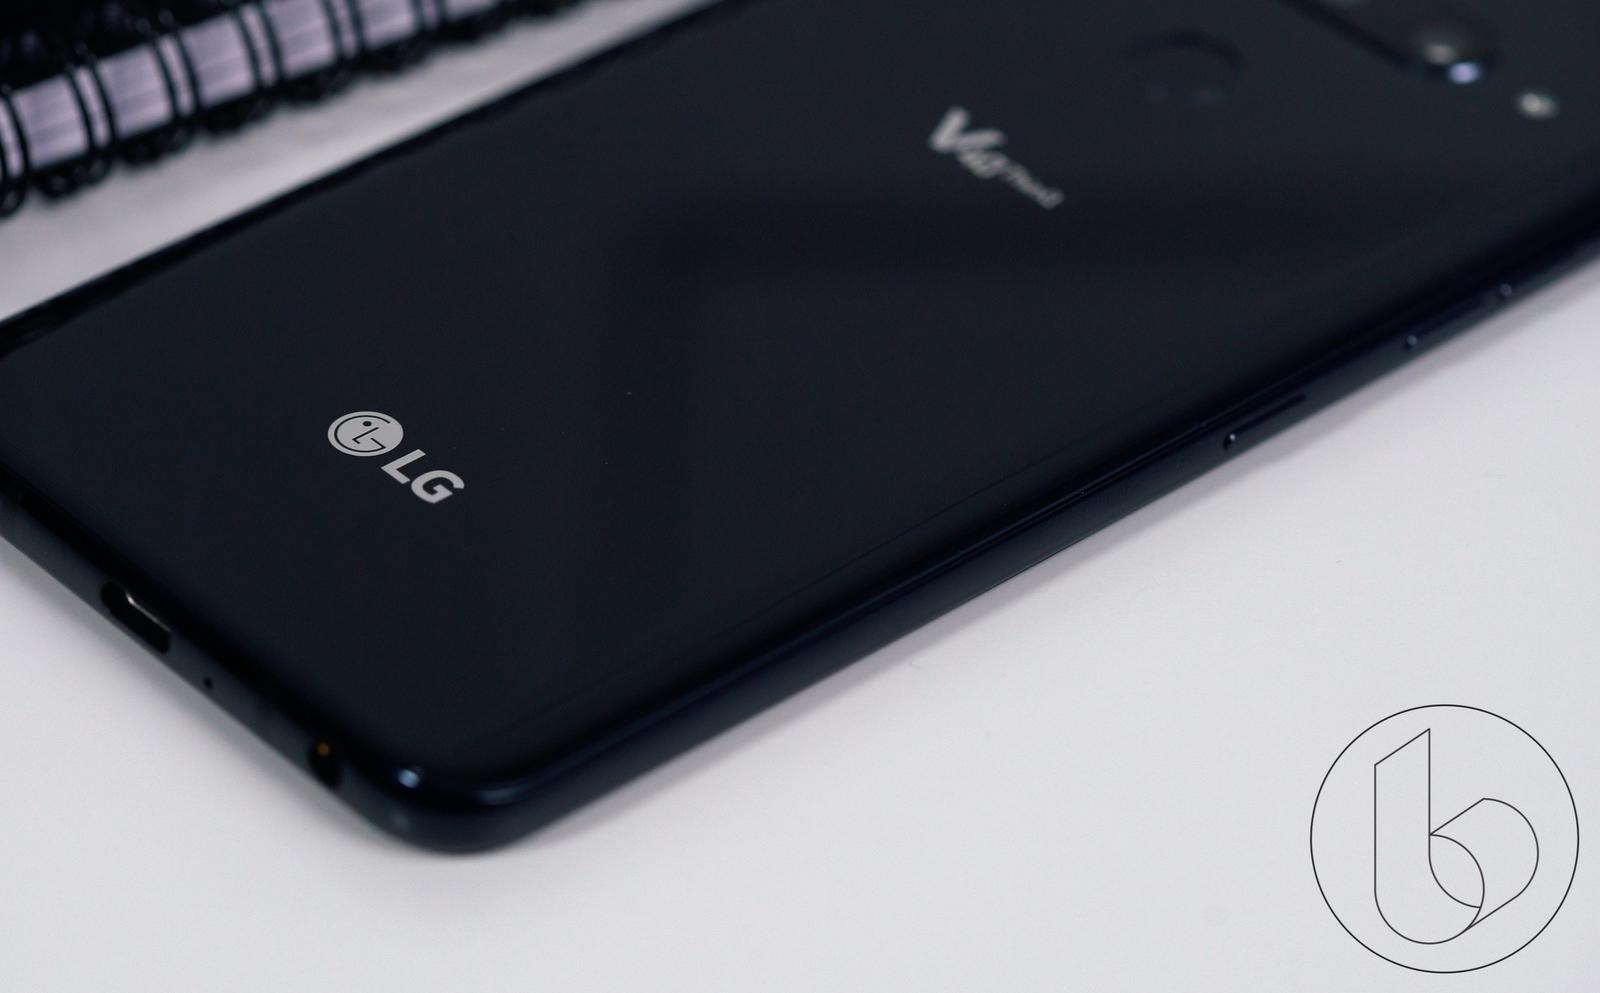 LG V40 review: LG Catches Up to Samsung and Google